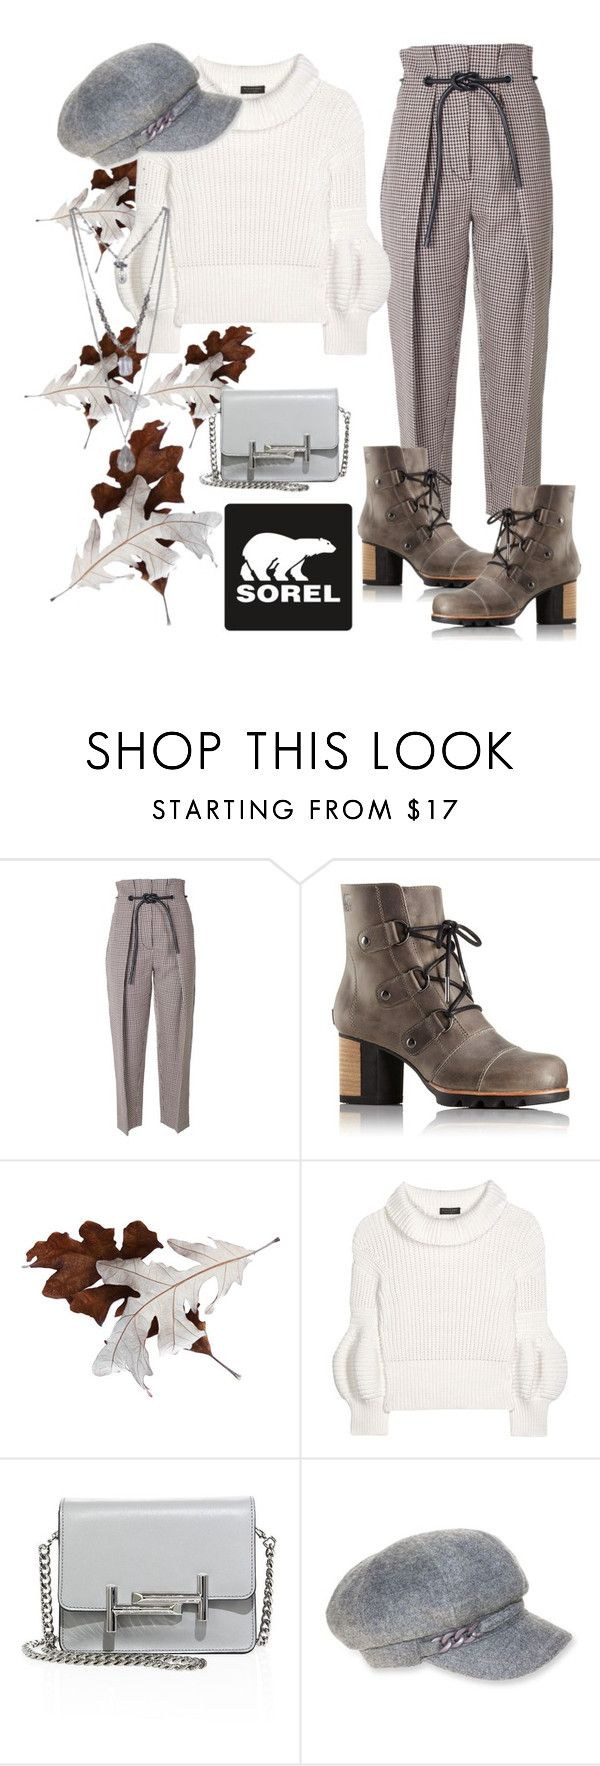 """""""Kick Up the Leaves (Stylishly) With SOREL: CONTEST ENTRY"""" by ghea-mareta ❤ liked on Polyvore featuring 3.1 Phillip Lim, SOREL, Burberry, Tod's, Nine West and sorelstyle"""